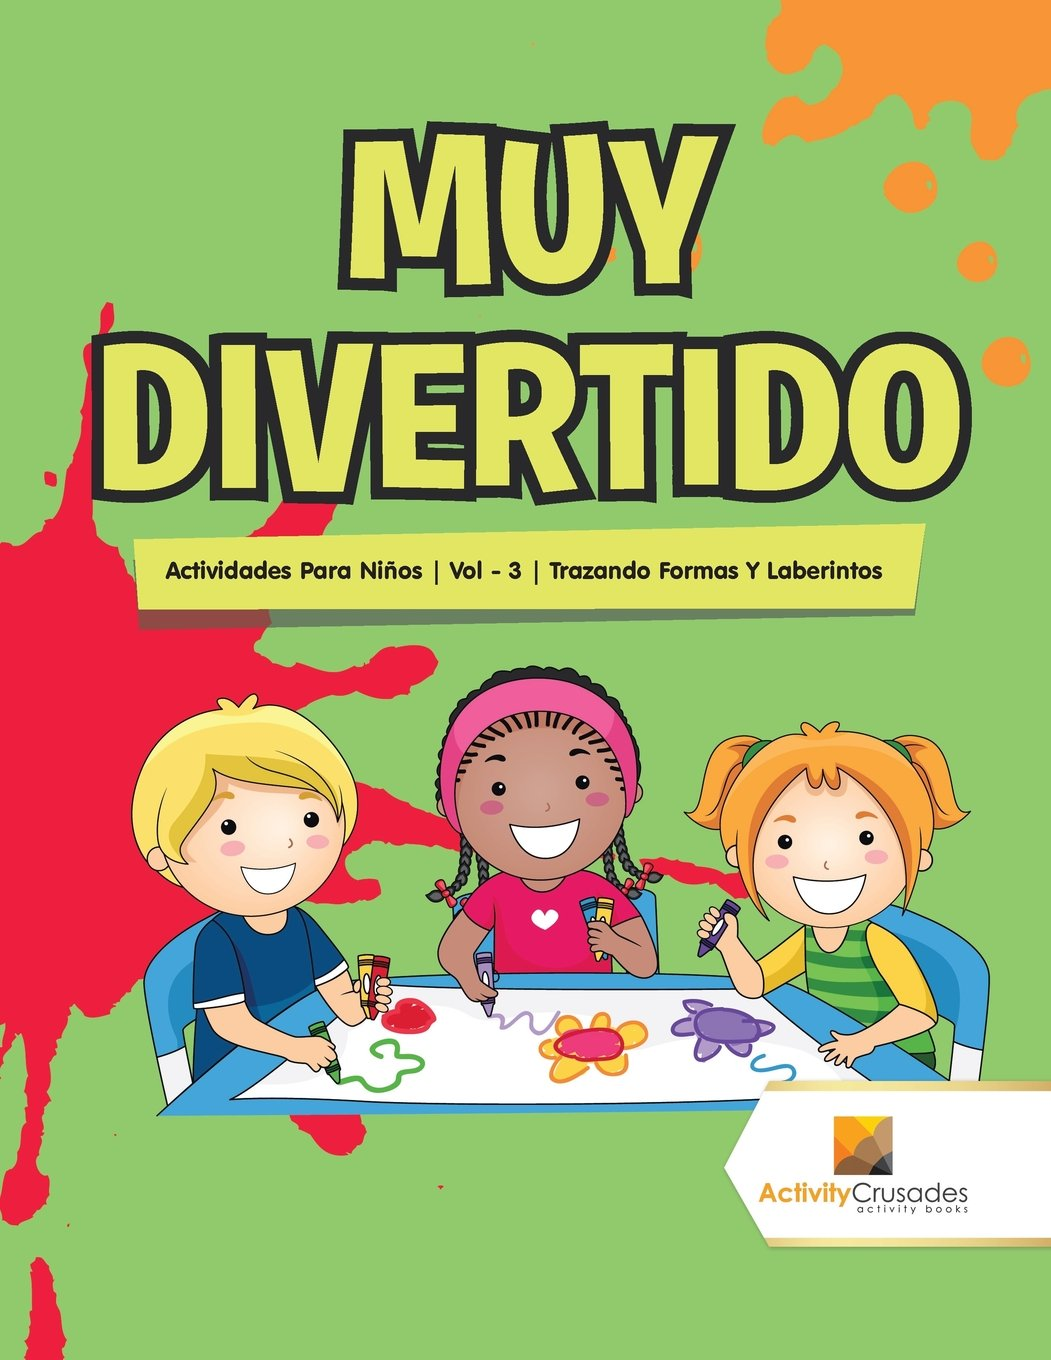 Muy Divertido : Actividades Para Niños | Vol - 3 | Trazando Formas Y Laberintos (Spanish Edition): Activity Crusades: 9780228223993: Amazon.com: Books